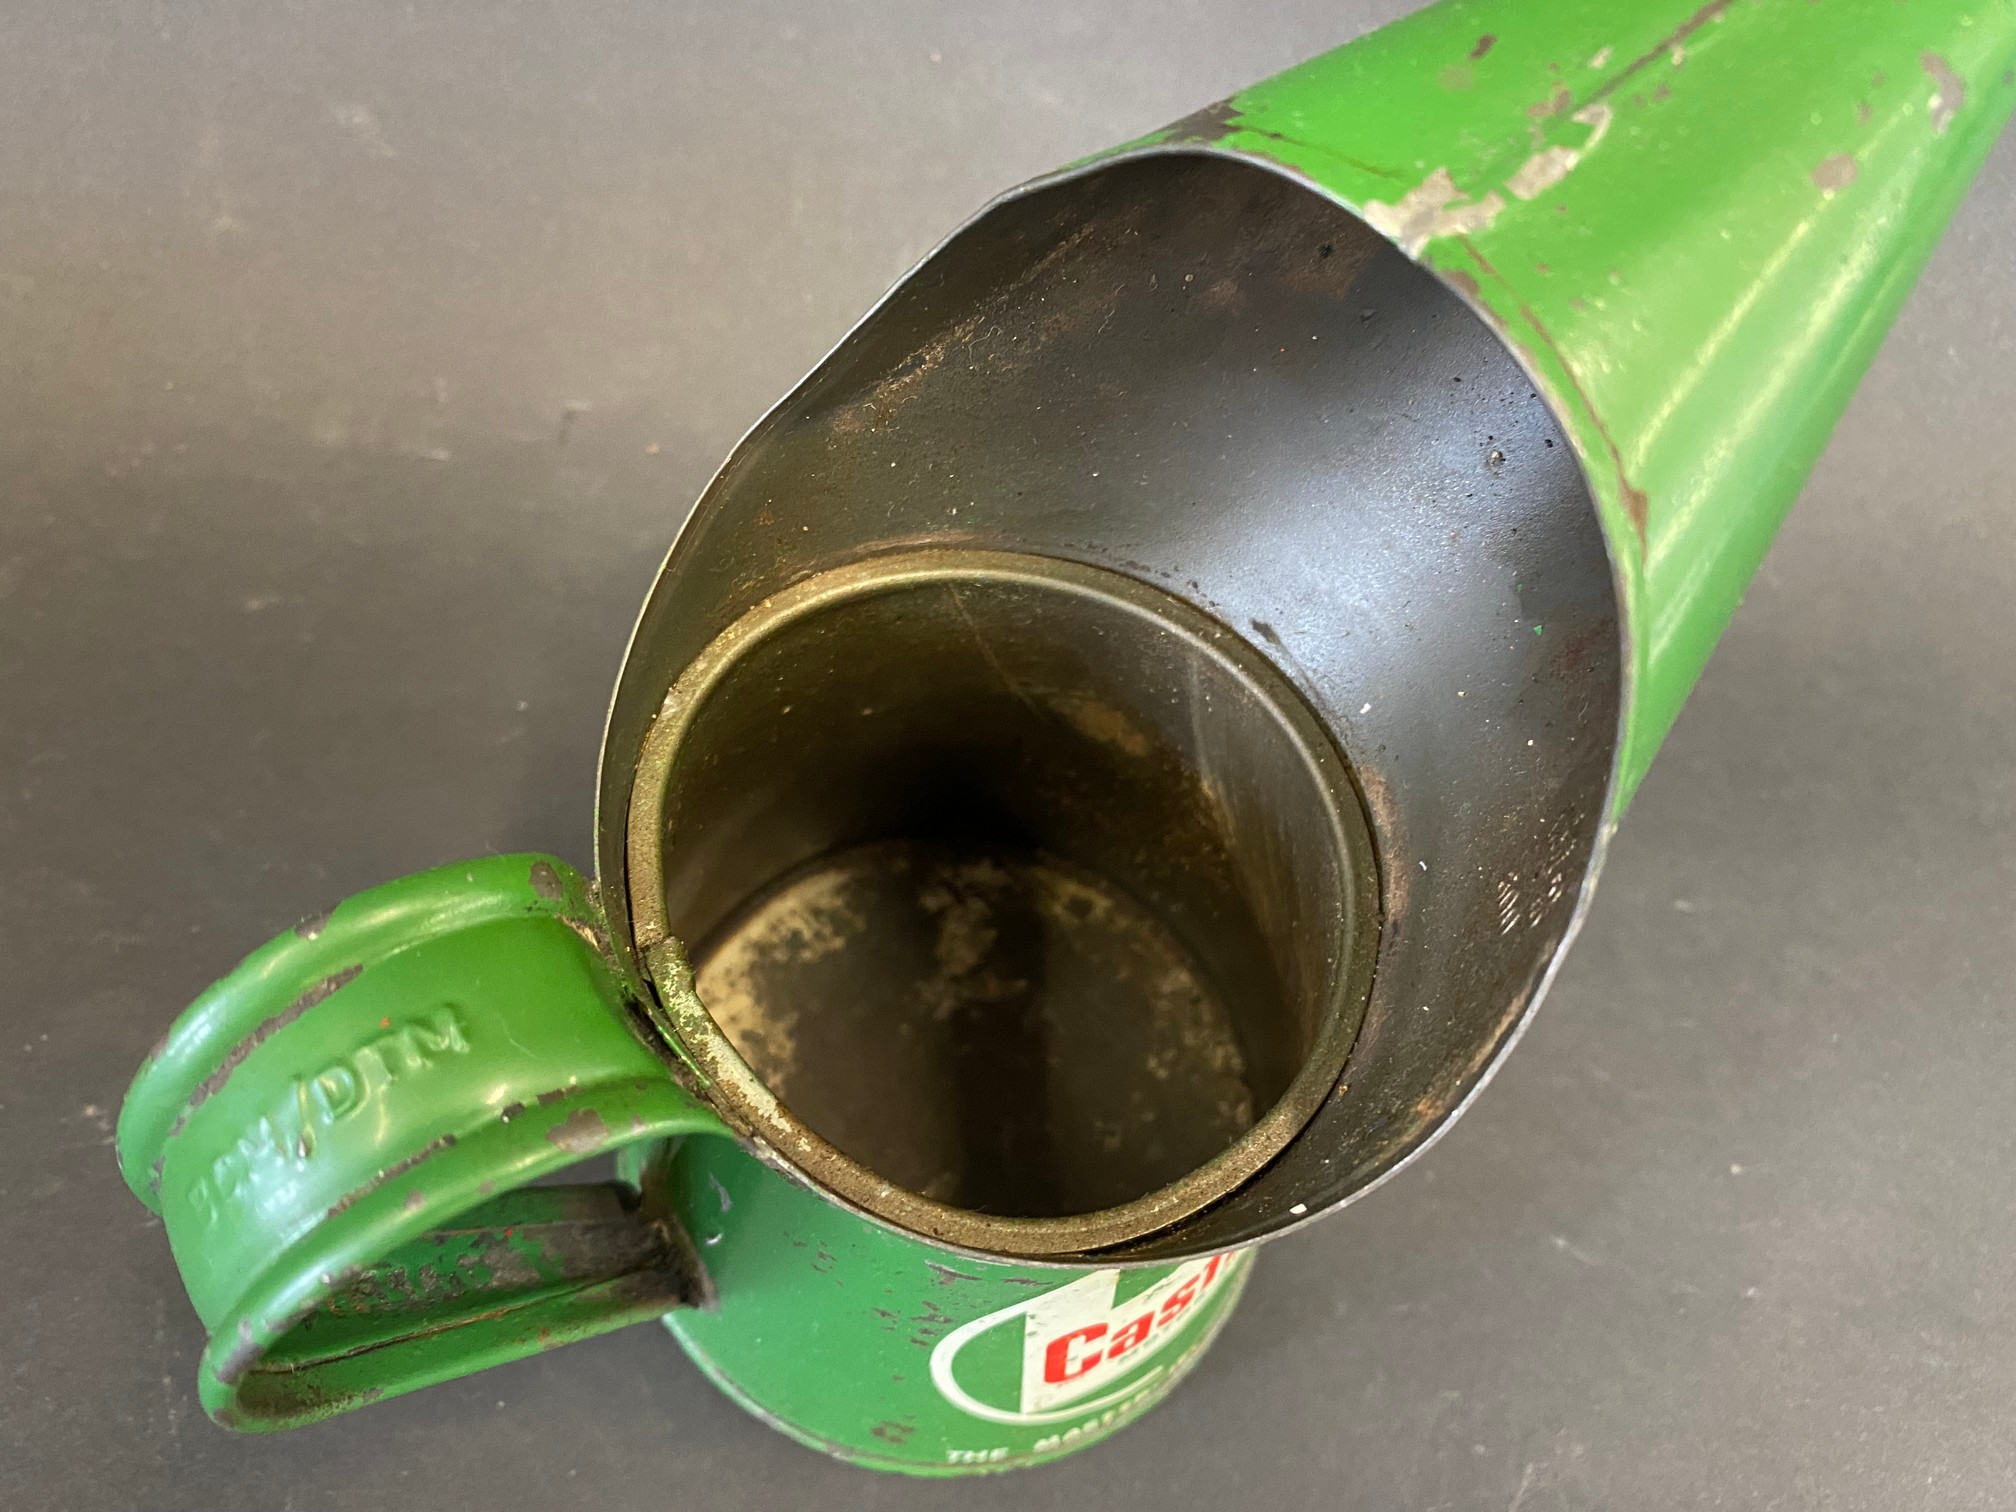 A Castrol Motor Oil half pint measure, dated 1965. - Image 3 of 4